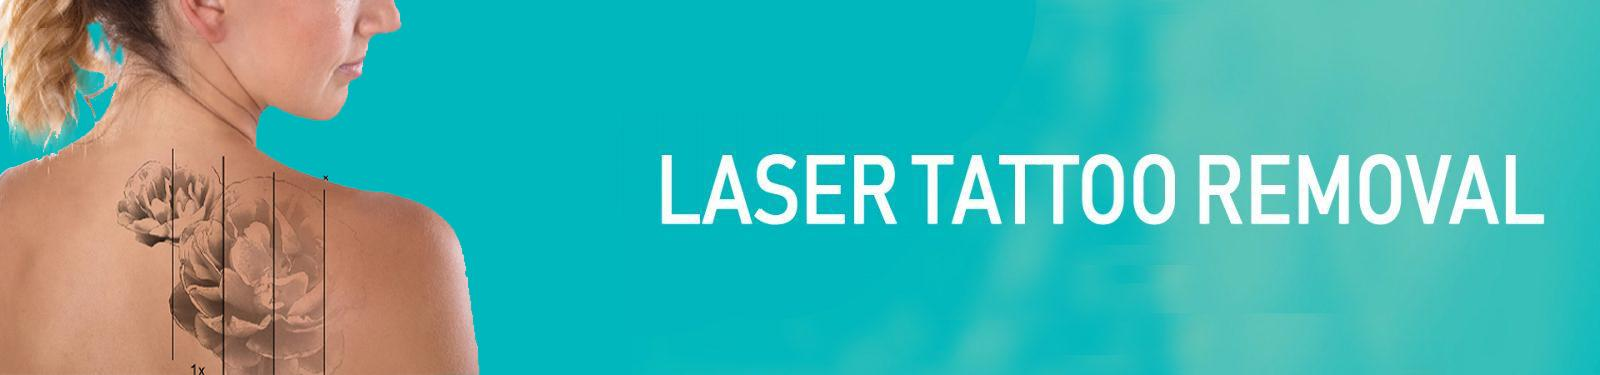 LASER-TATTOO-REMOVAL copy